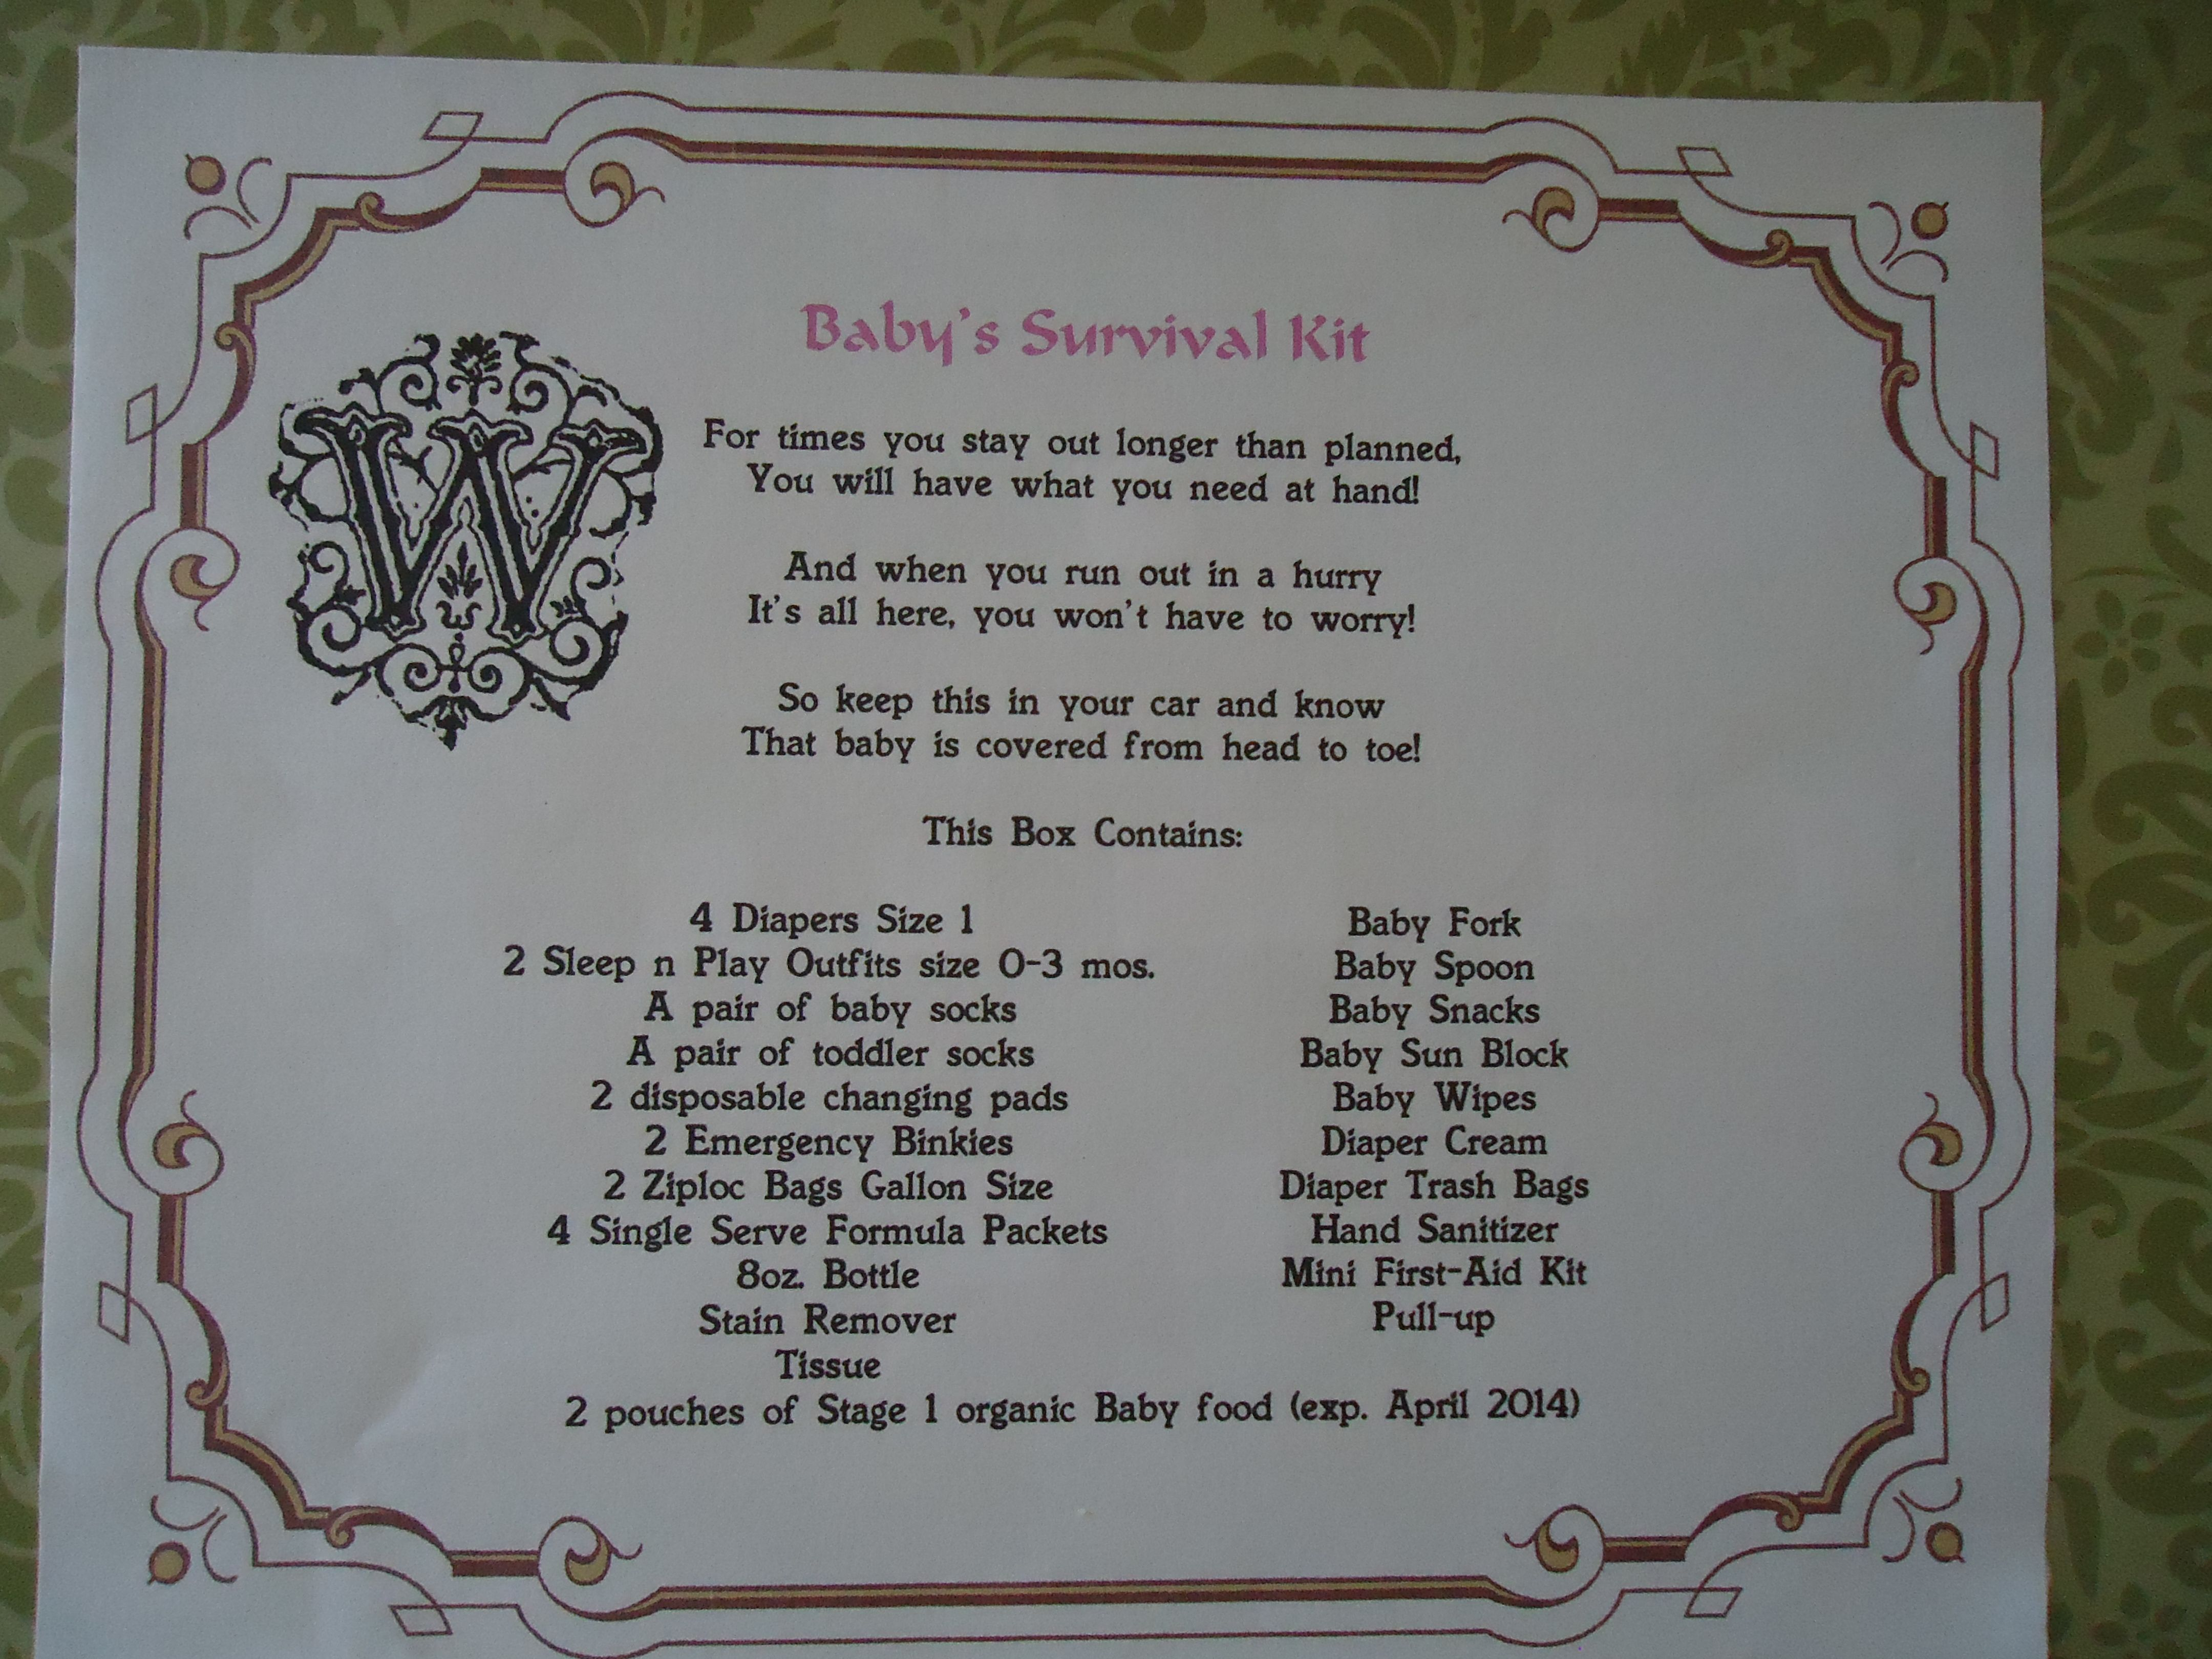 Baby Gift List Poem : Baby survival kit poem and list of possible items to